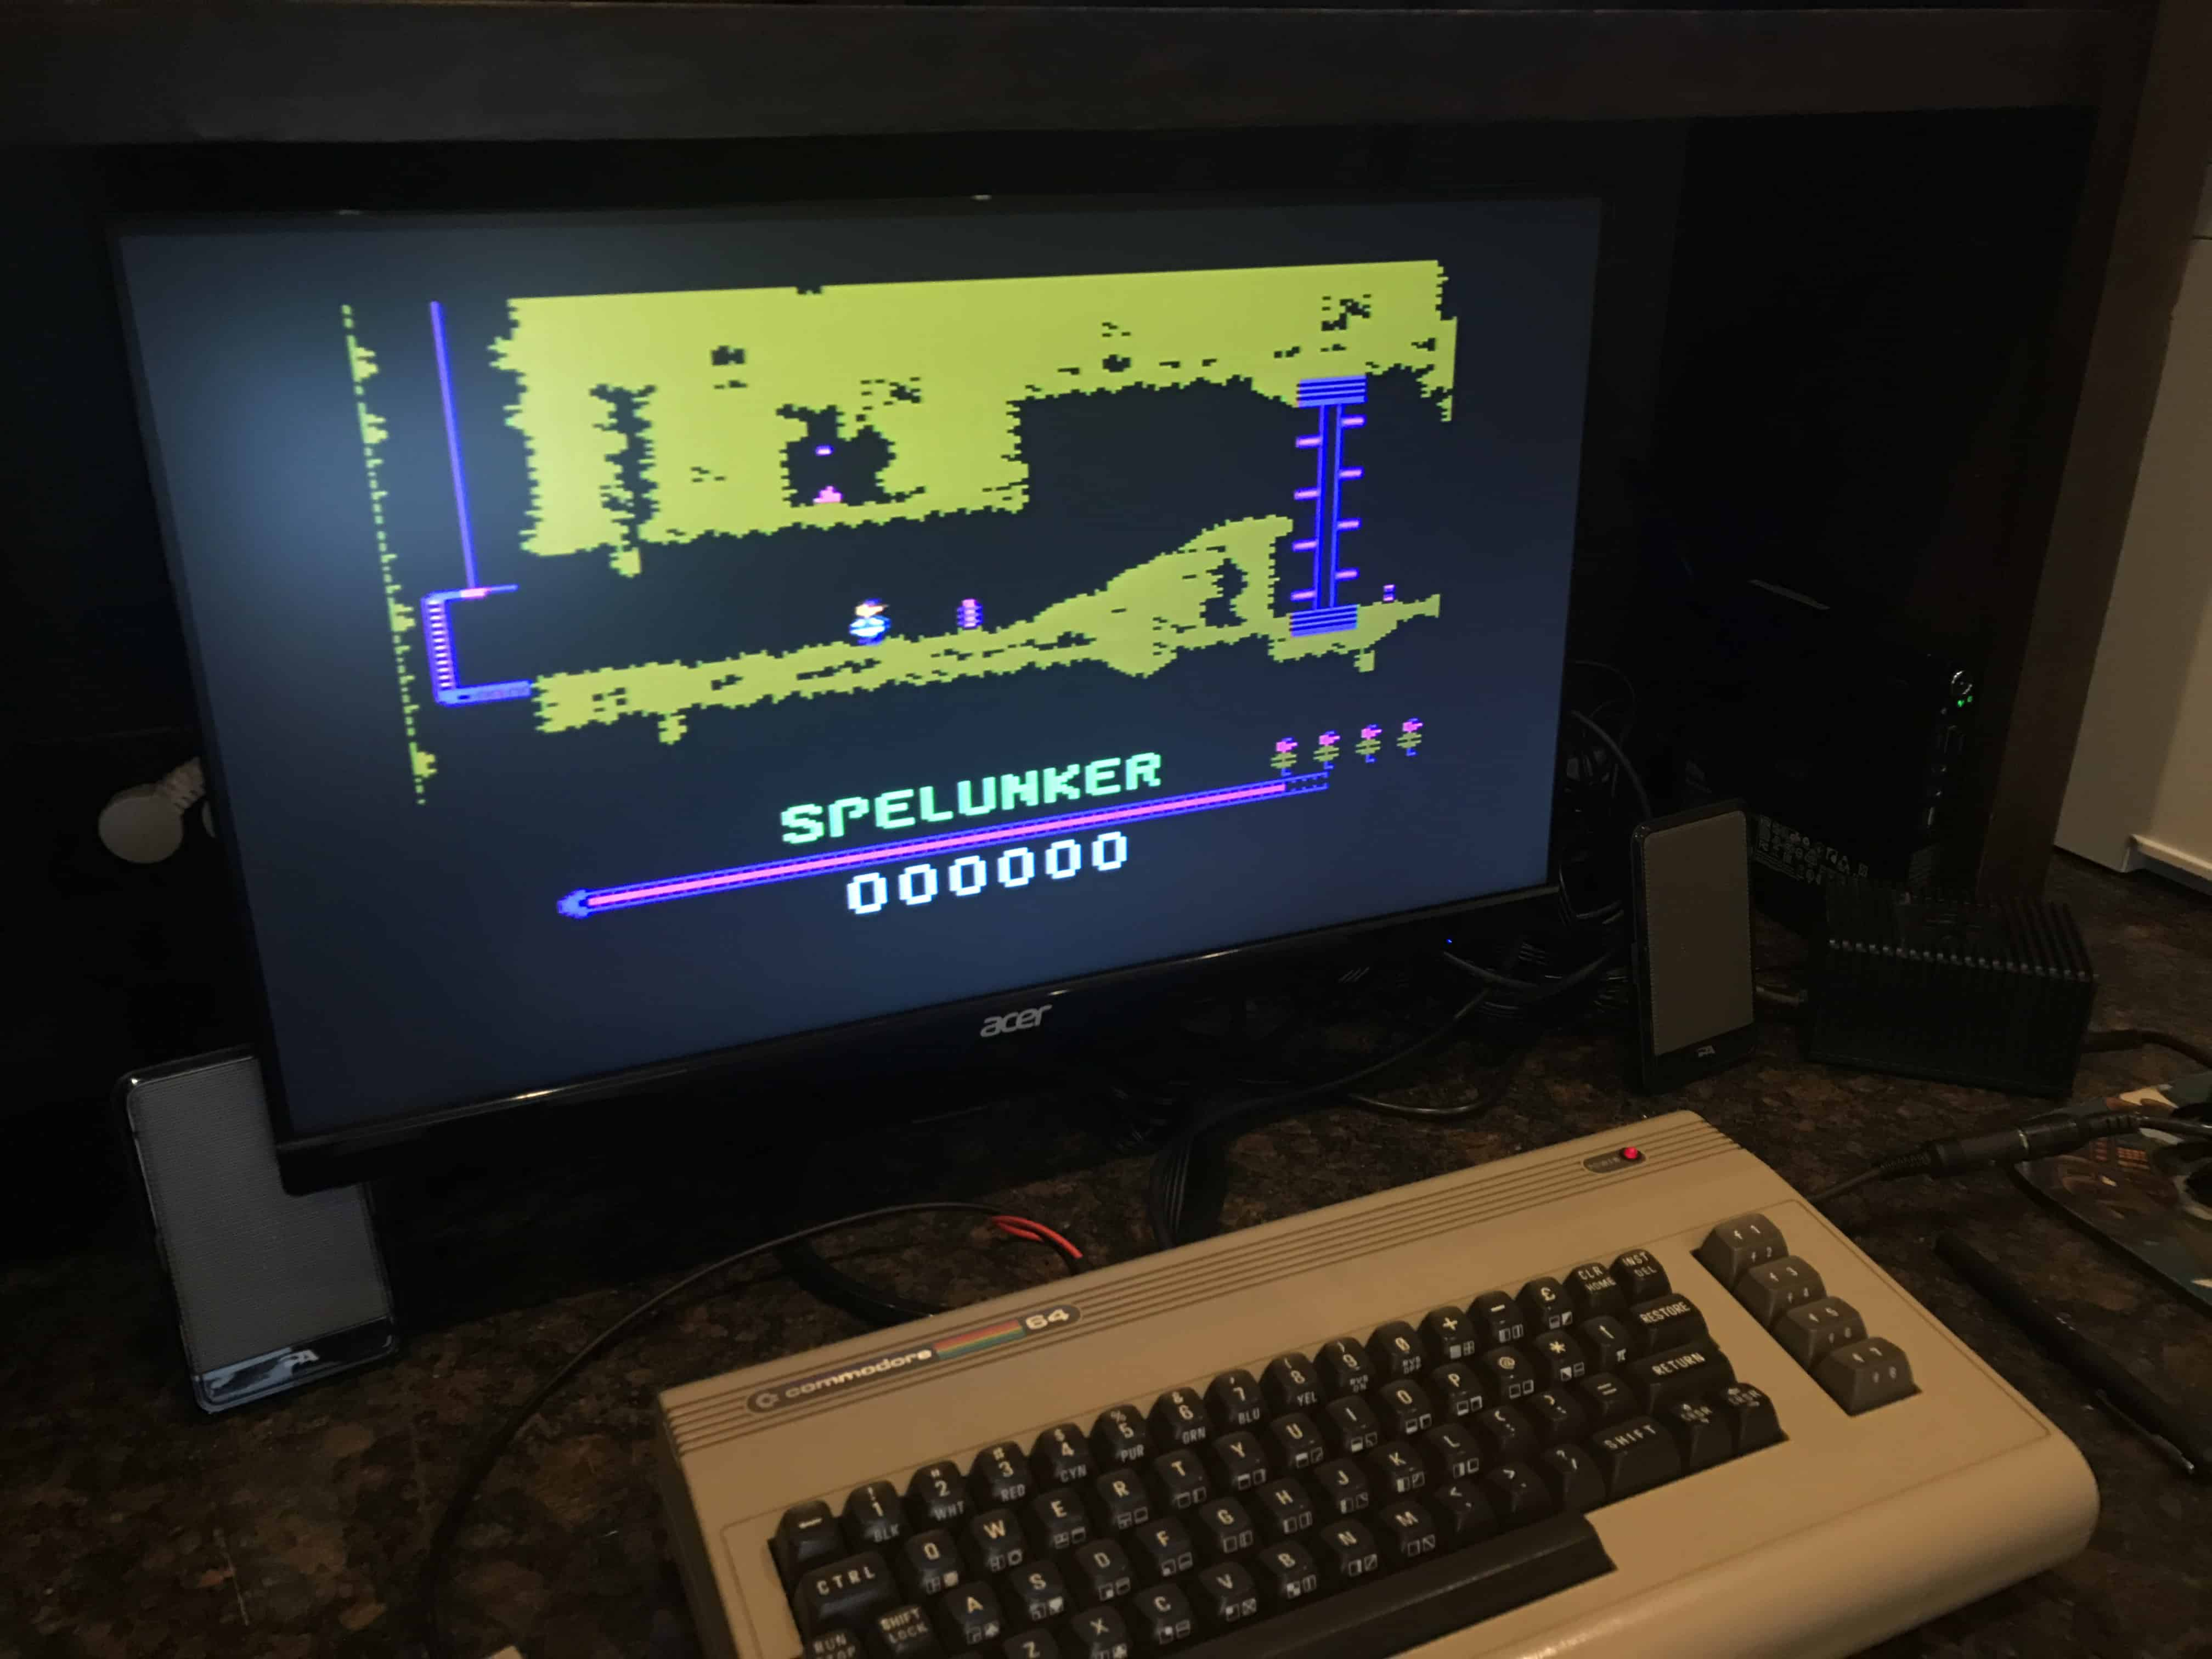 In my case I am playing Spelunker one of my all time favorite C64 games even if it was ridiculously hard to win